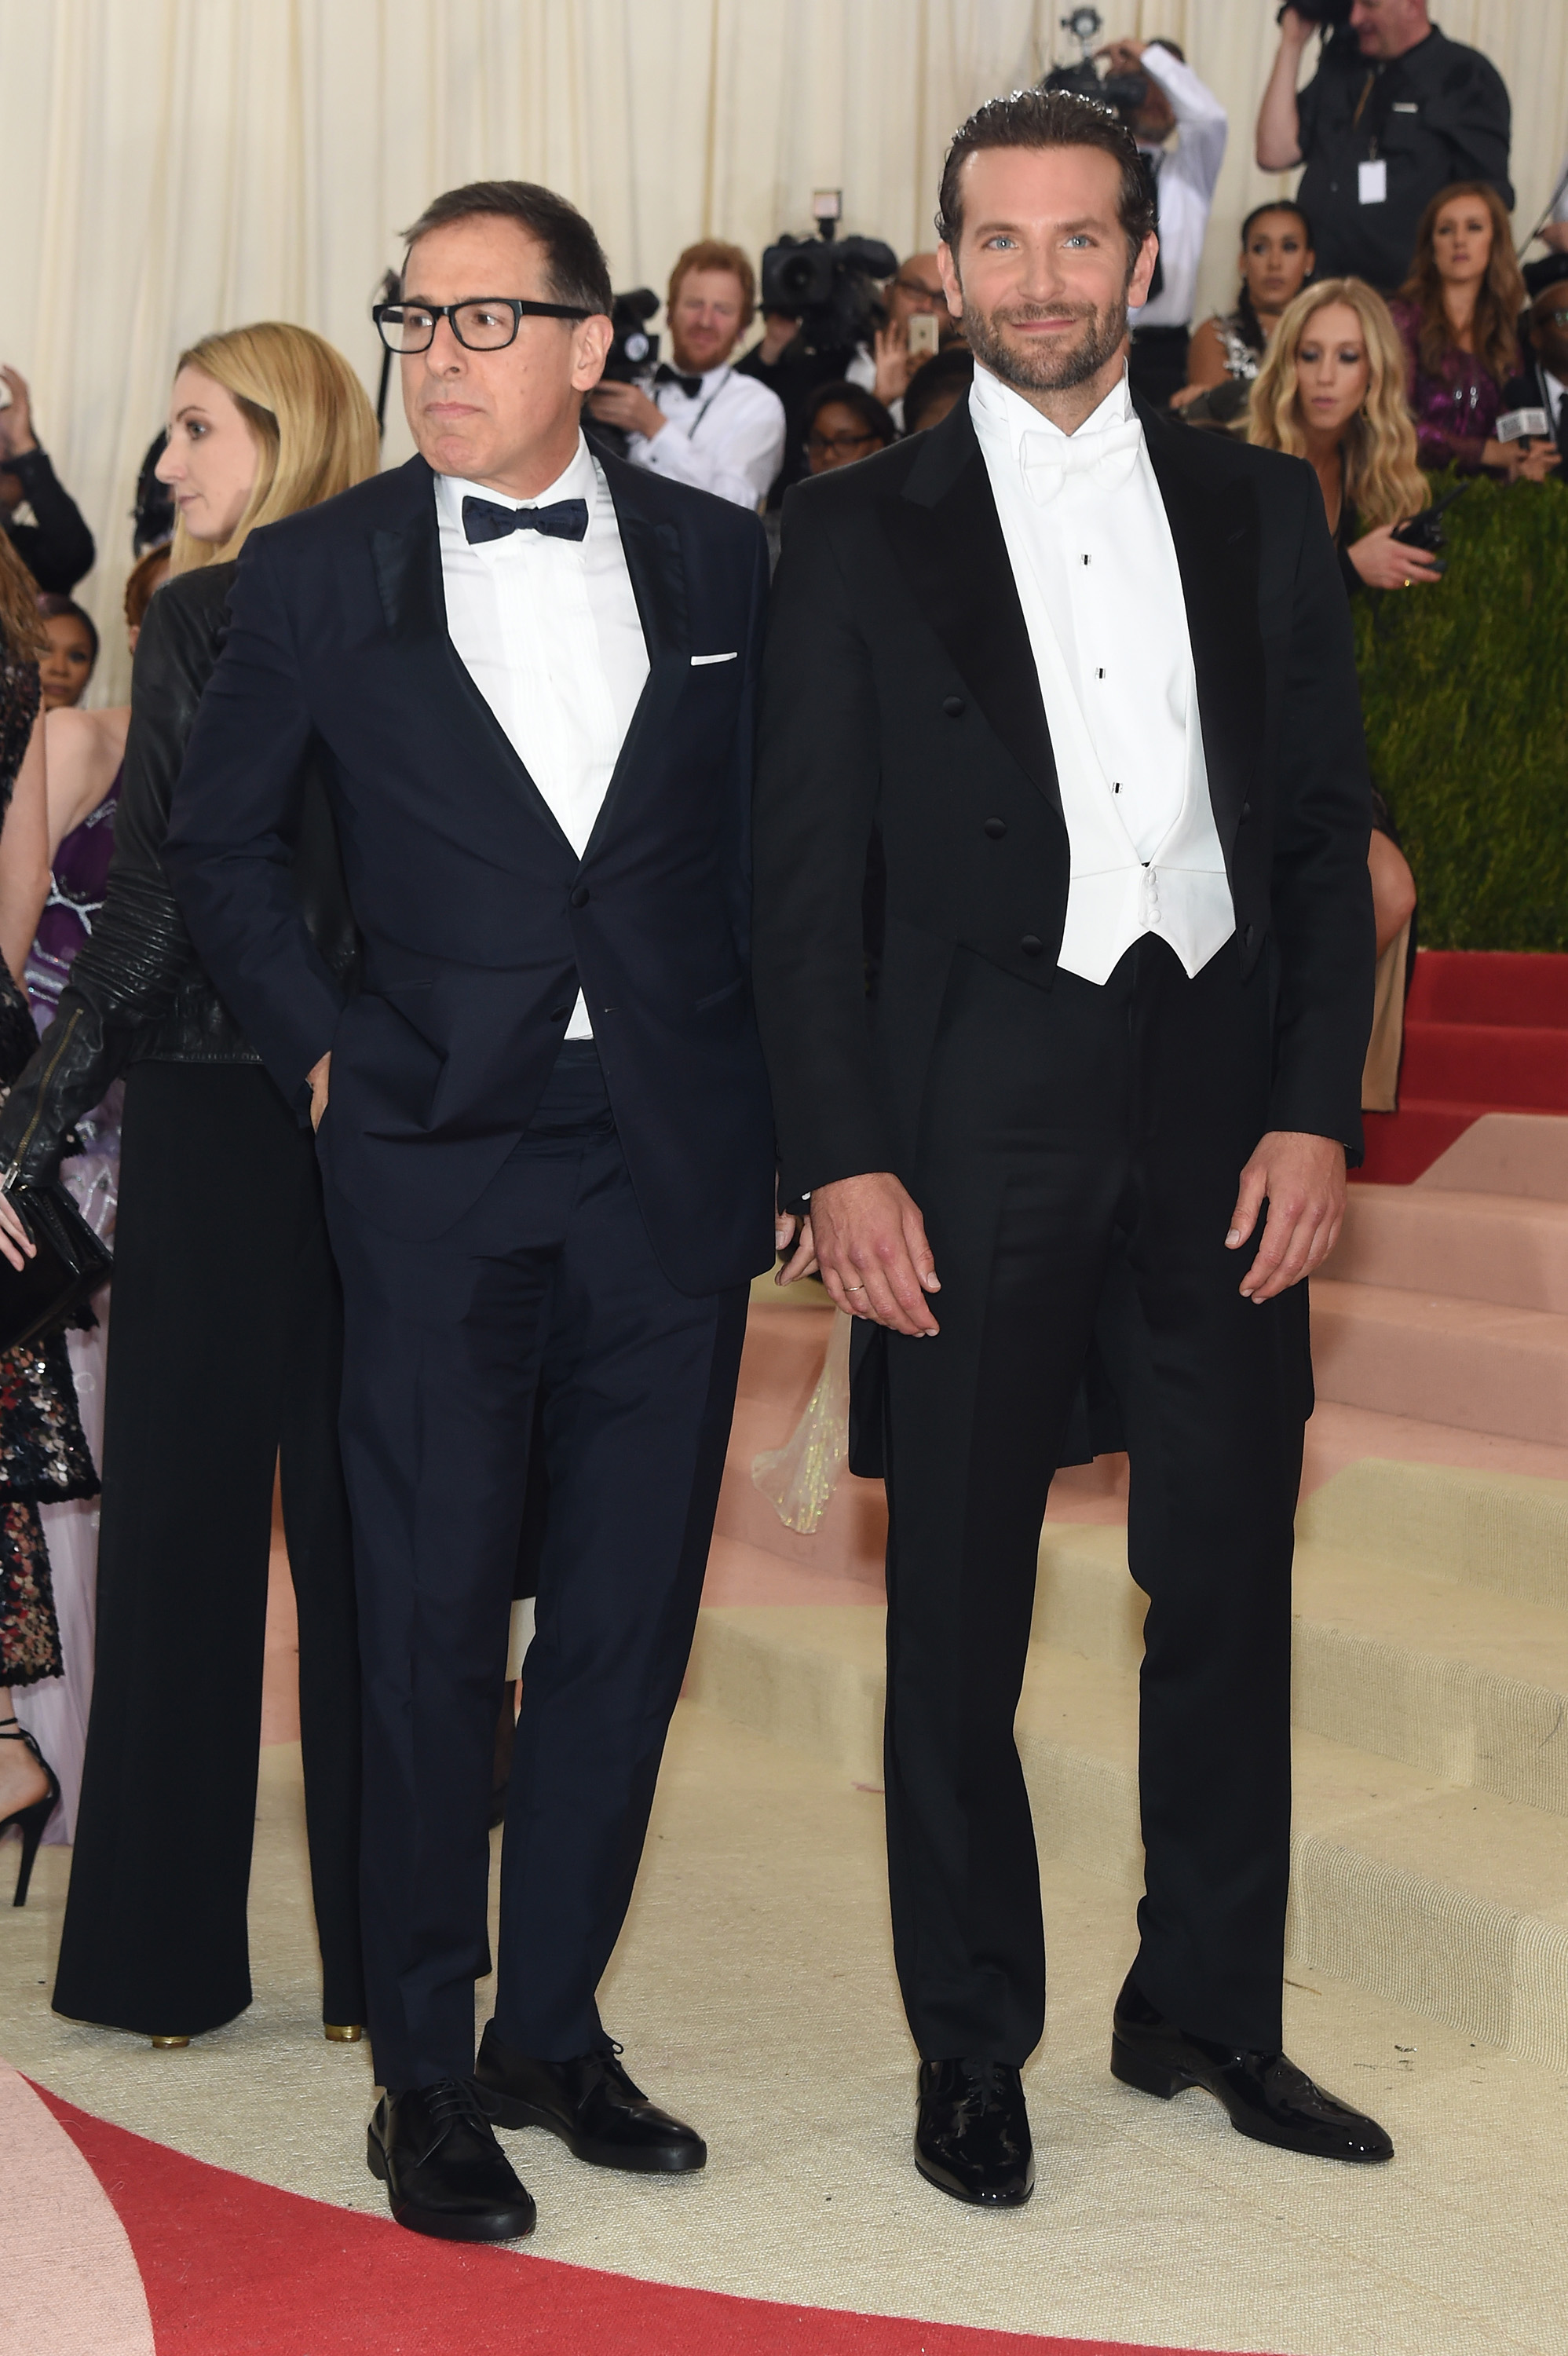 Director David O. Russell and Bradley Cooper attend  Manus x Machina: Fashion In An Age Of Technology  Costume Institute Gala at Metropolitan Museum of Art on May 2, 2016 in New York City.